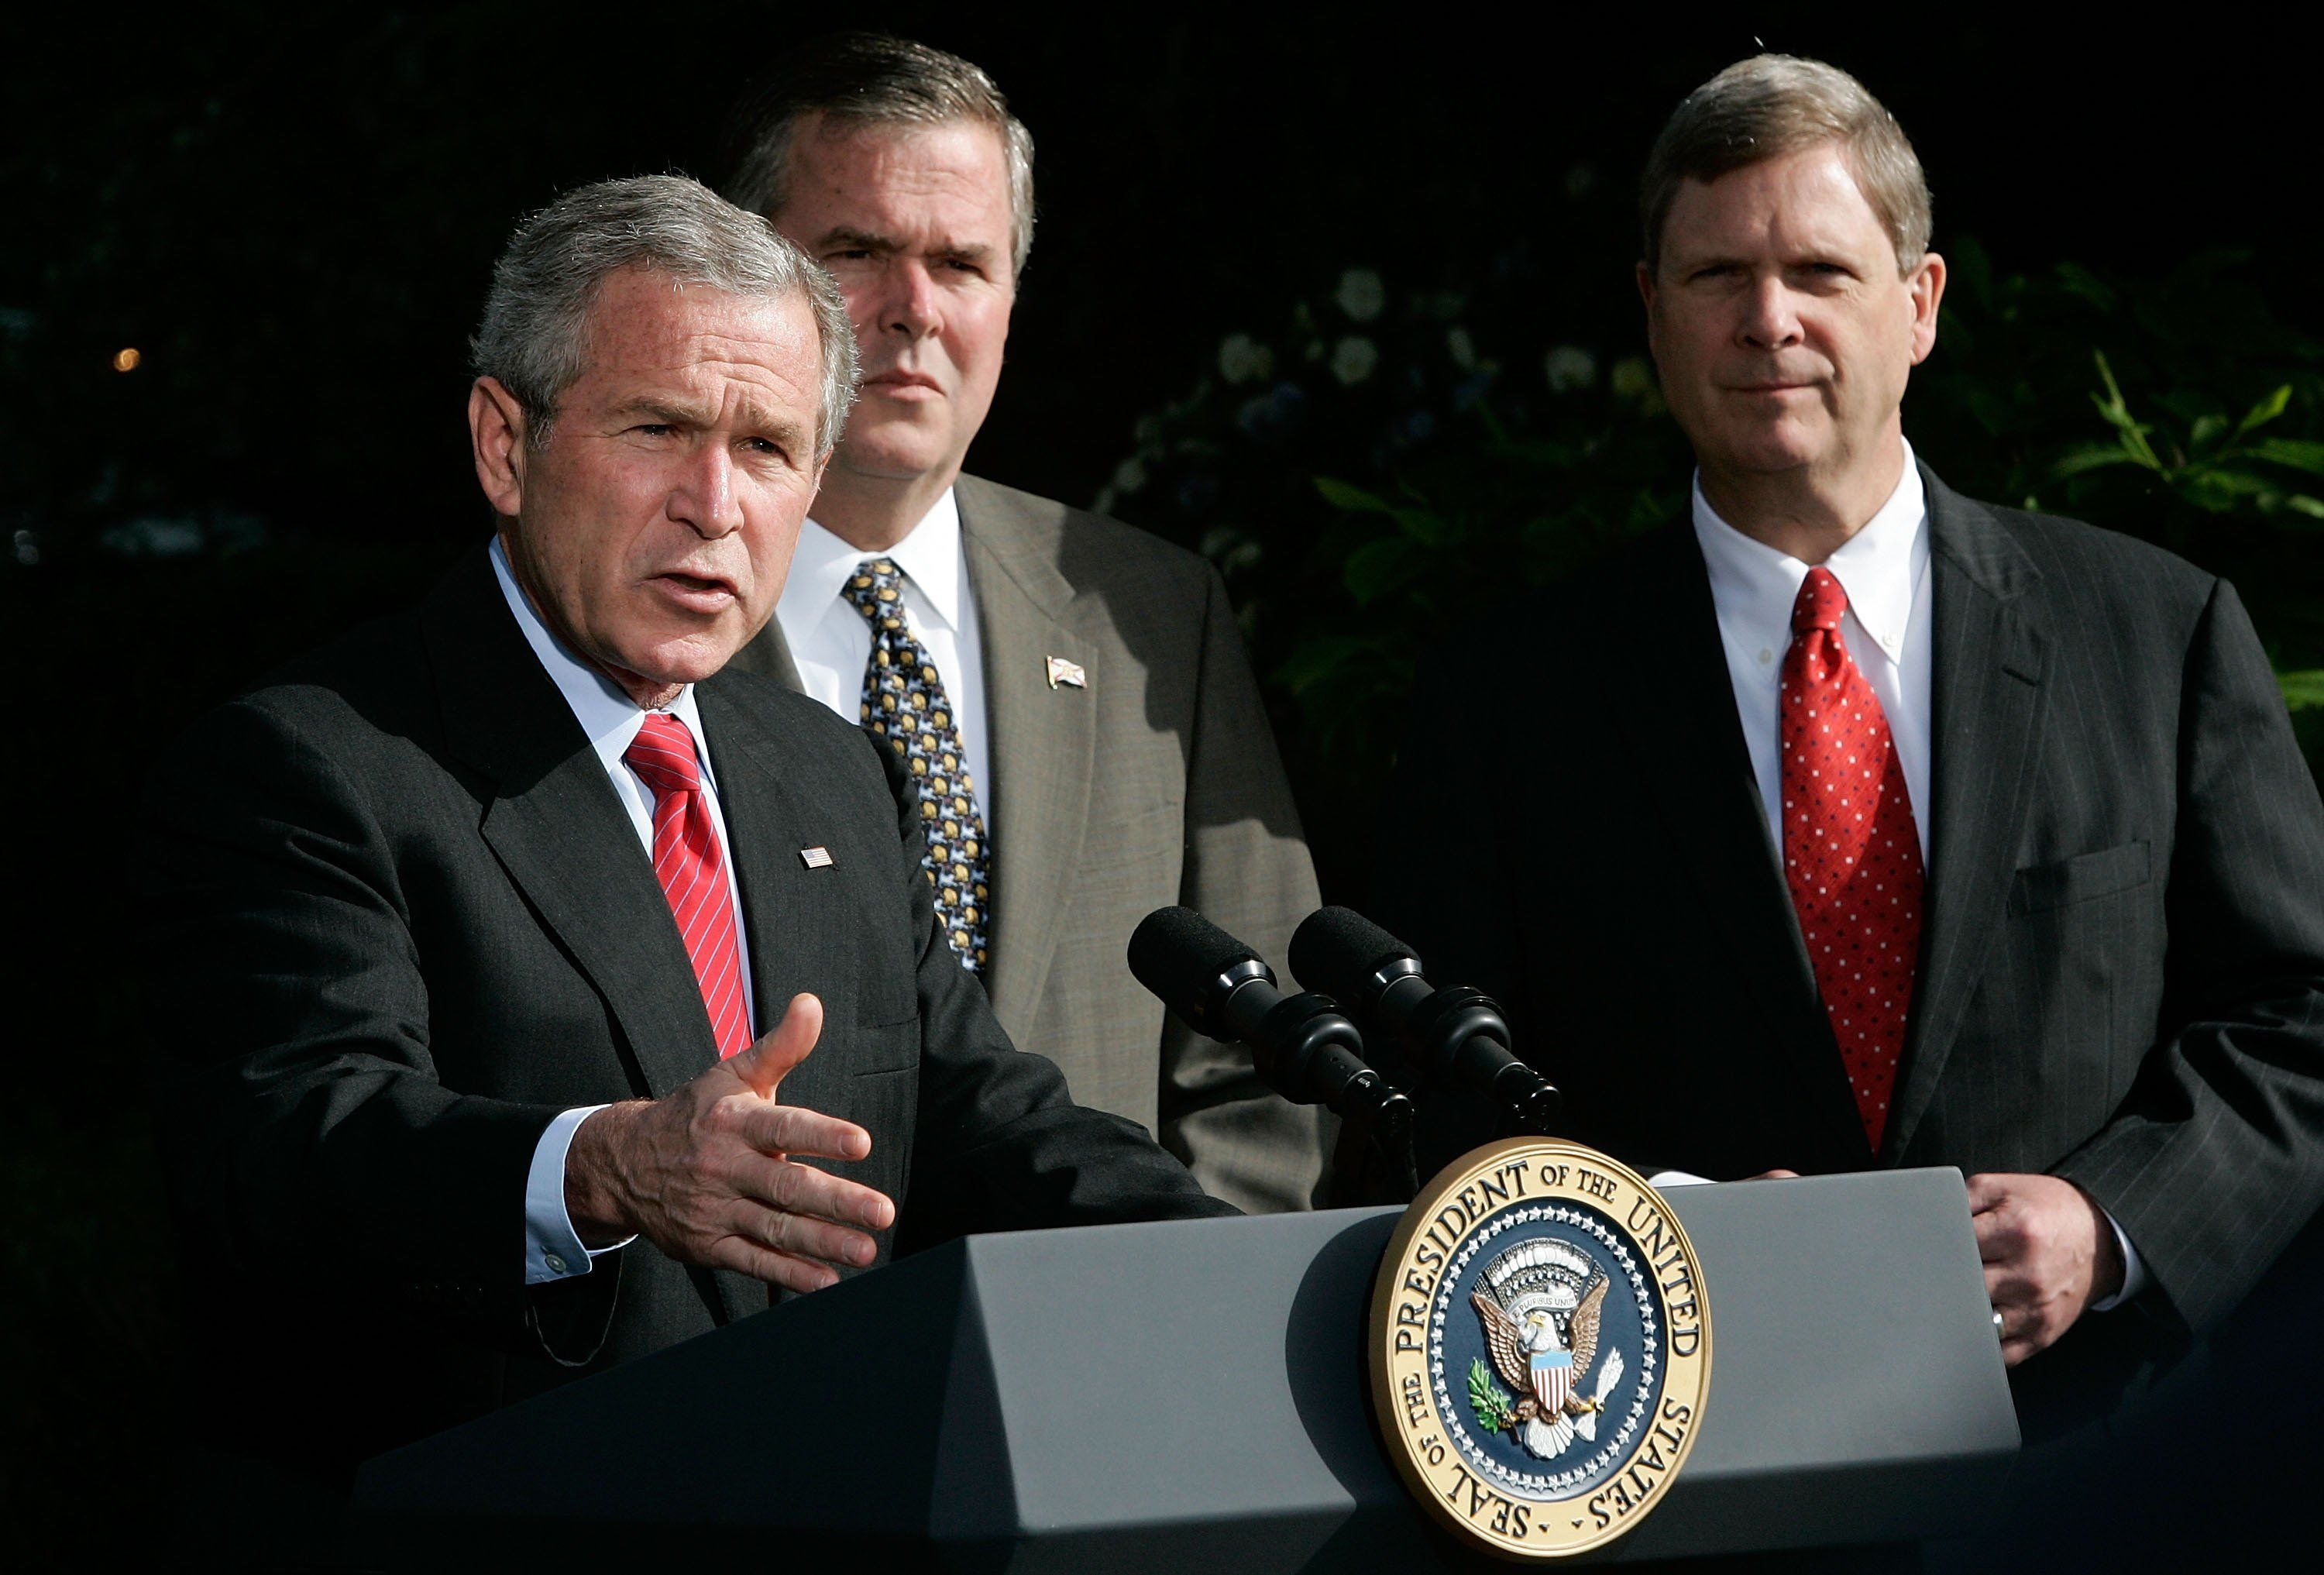 WASHINGTON - APRIL 19:  U.S. President George W. Bush (L) speaks to the press on the war on terror as Iowa Democrtaic Governor Tom Vilsack (R) and Florida Republican Governor Jeb Bush look on after a meeting April 19, 2006 at the White House in Washington, DC. The governors have returned from a trip to Iraq and Afghanistan.  (Photo by Alex Wong/Getty Images)